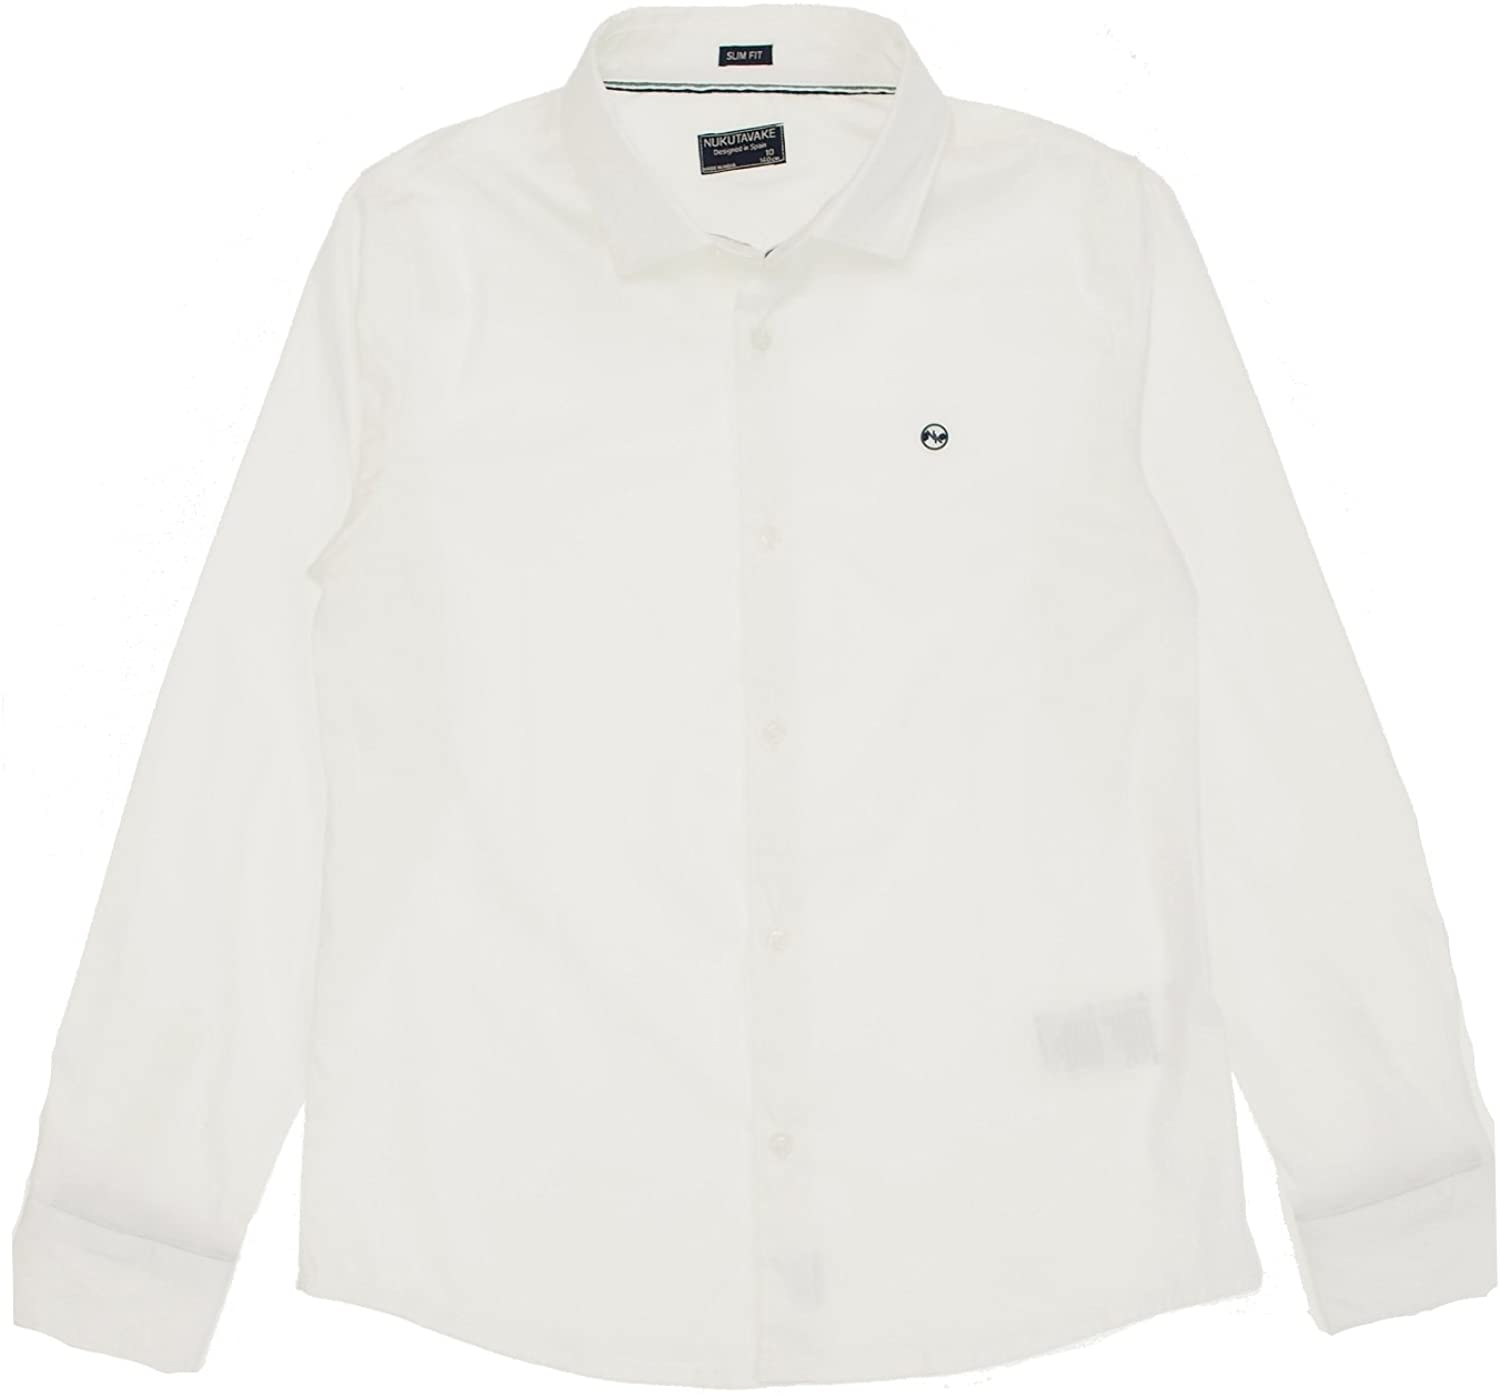 Mayoral - L/s Stretch Shirt for Boys - 6160, White